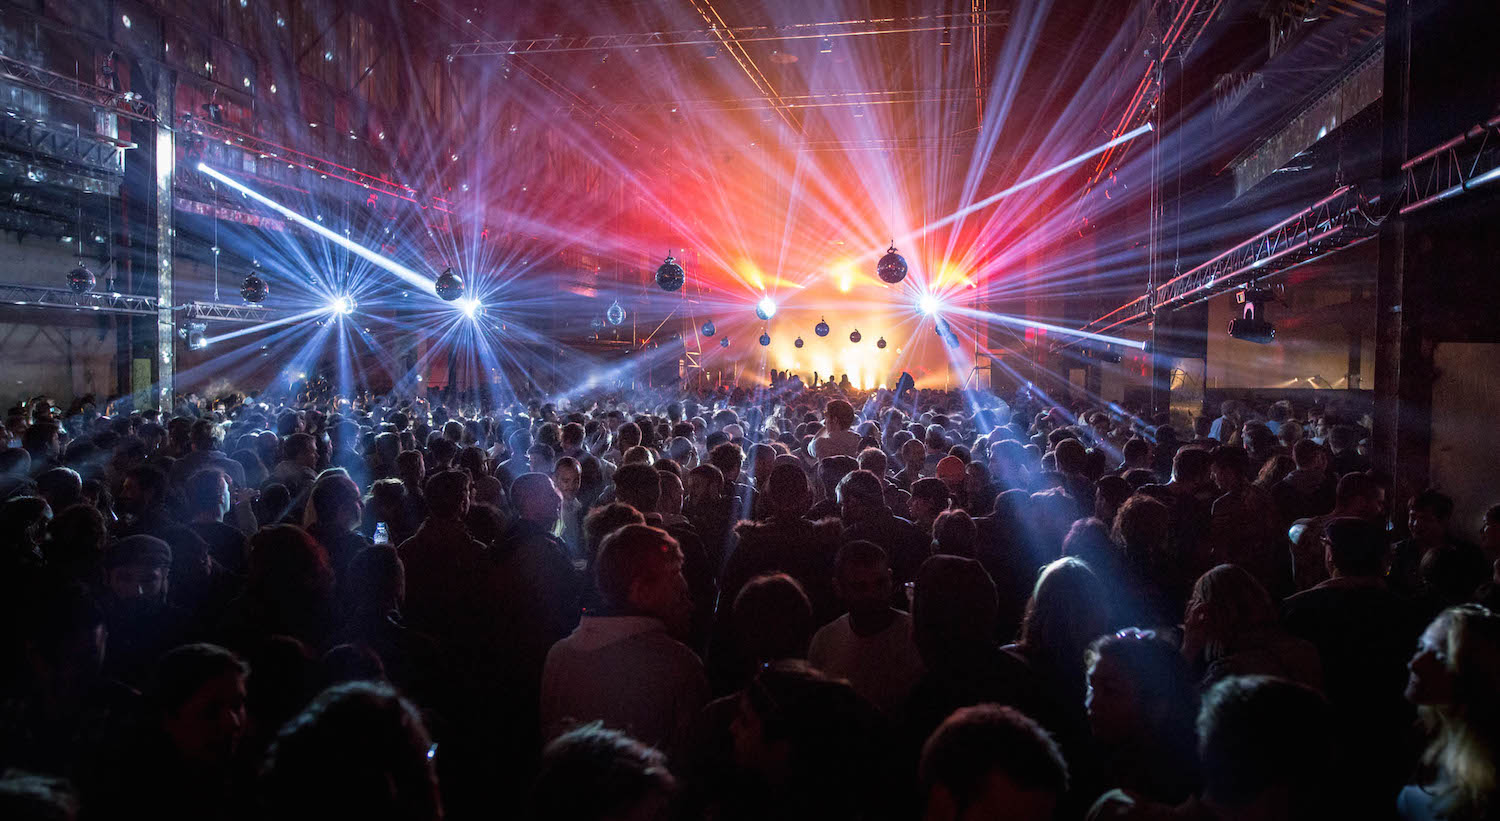 The crowd enjoys the show at Red Bull Music Academy stage during Nuits sonores festival in Lyon, France on May 15th 2015